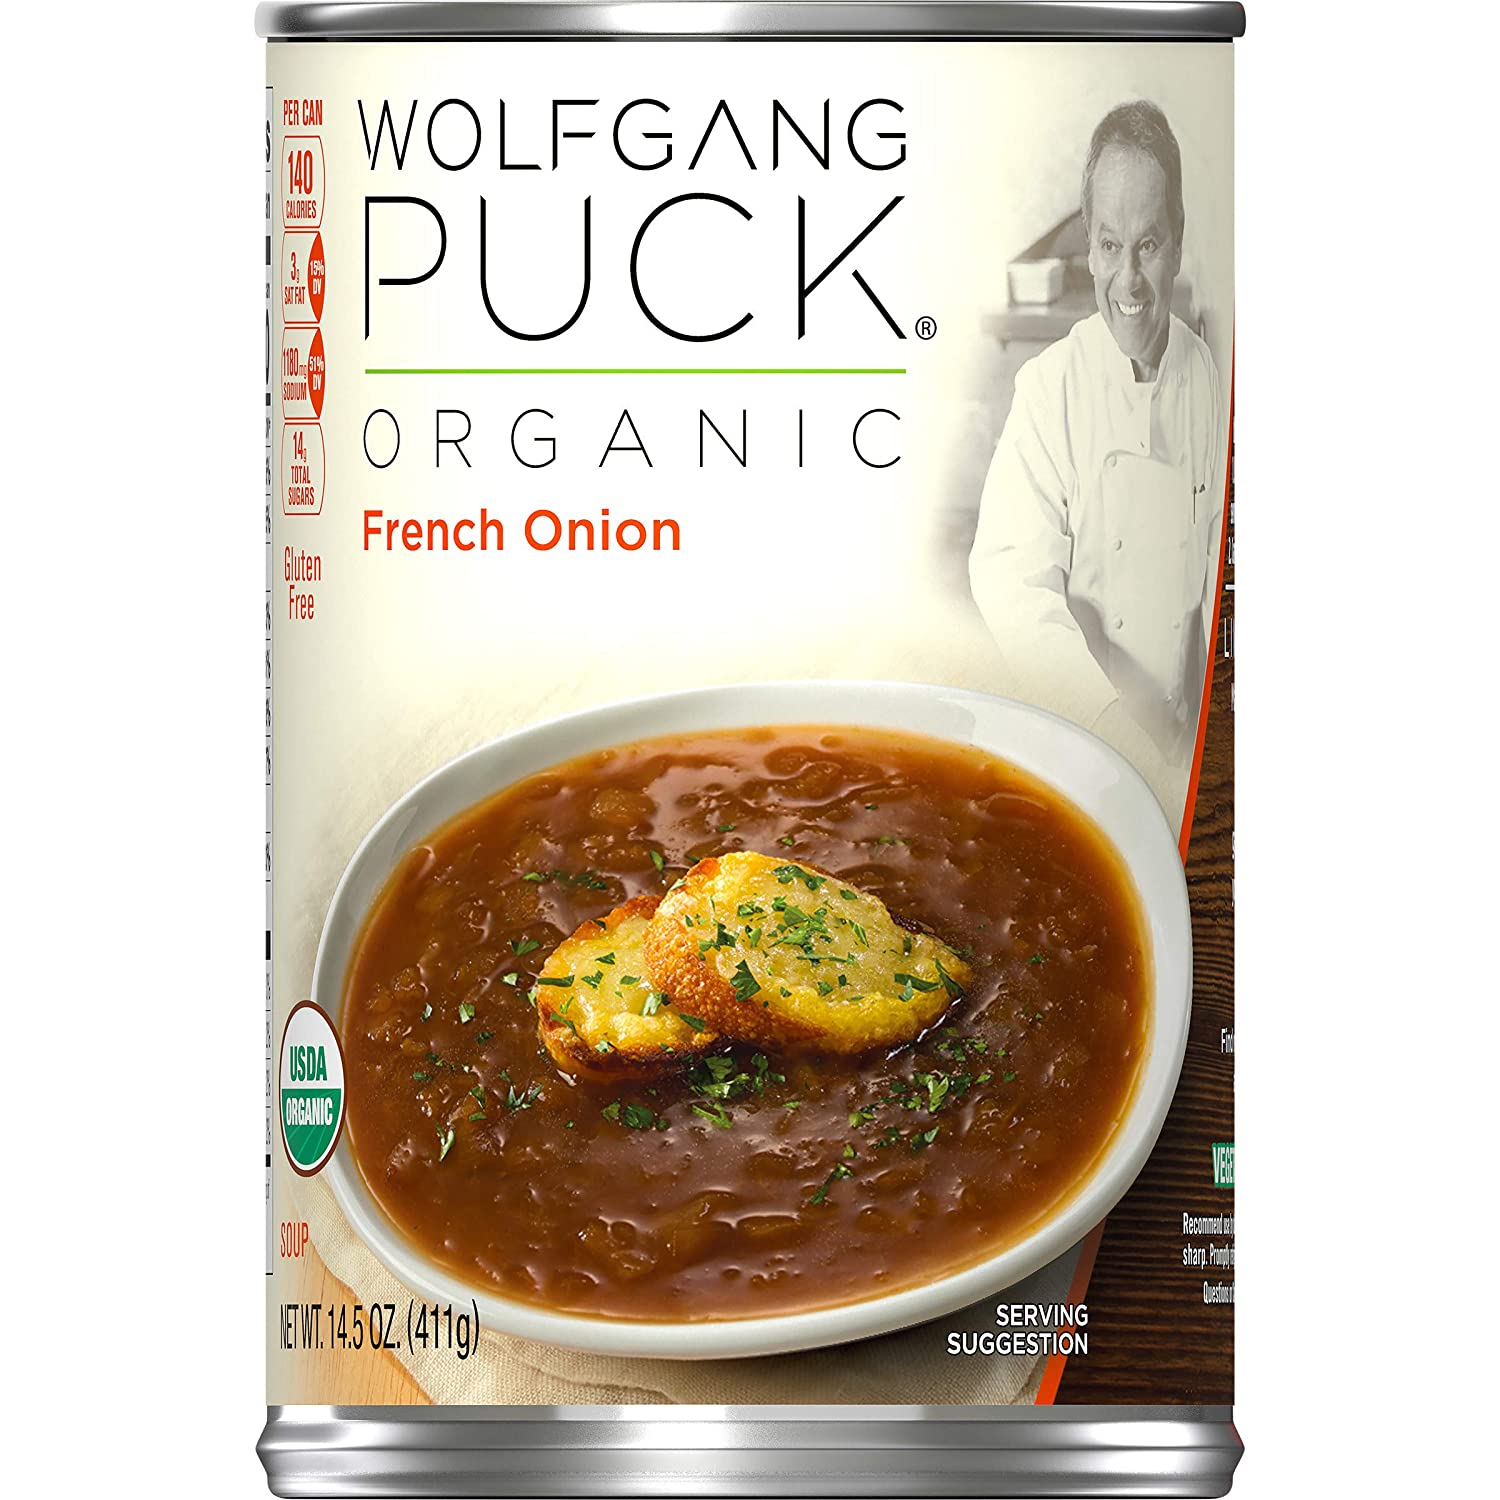 Wolfgang Puck Organic French Onion Oakland Mall Soup Year-end gift of Pack 14.5 oz. 1 Can